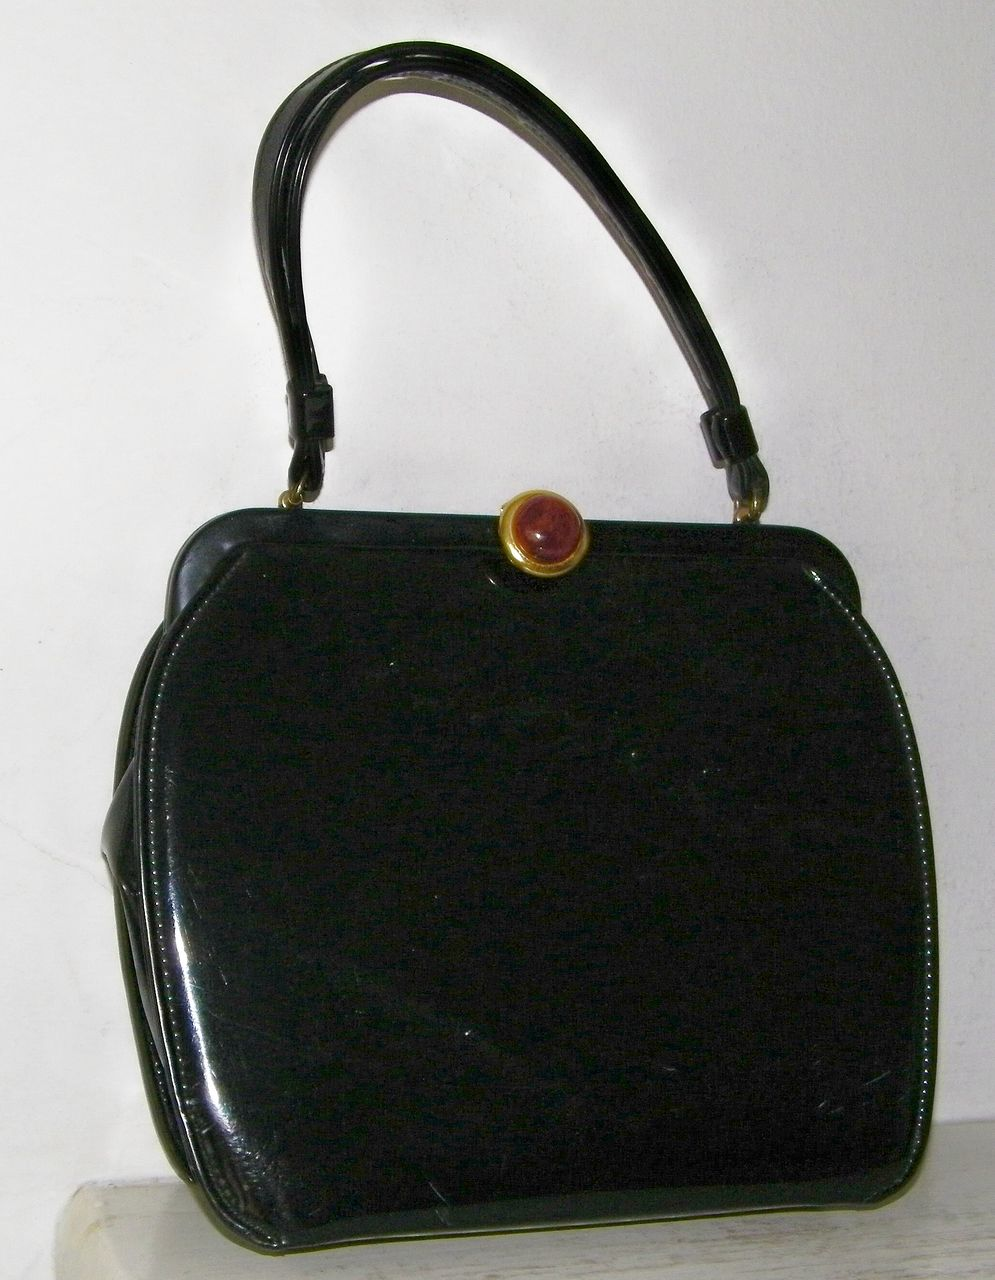 Black Patent Handbag Root Beer Lucite Clasp